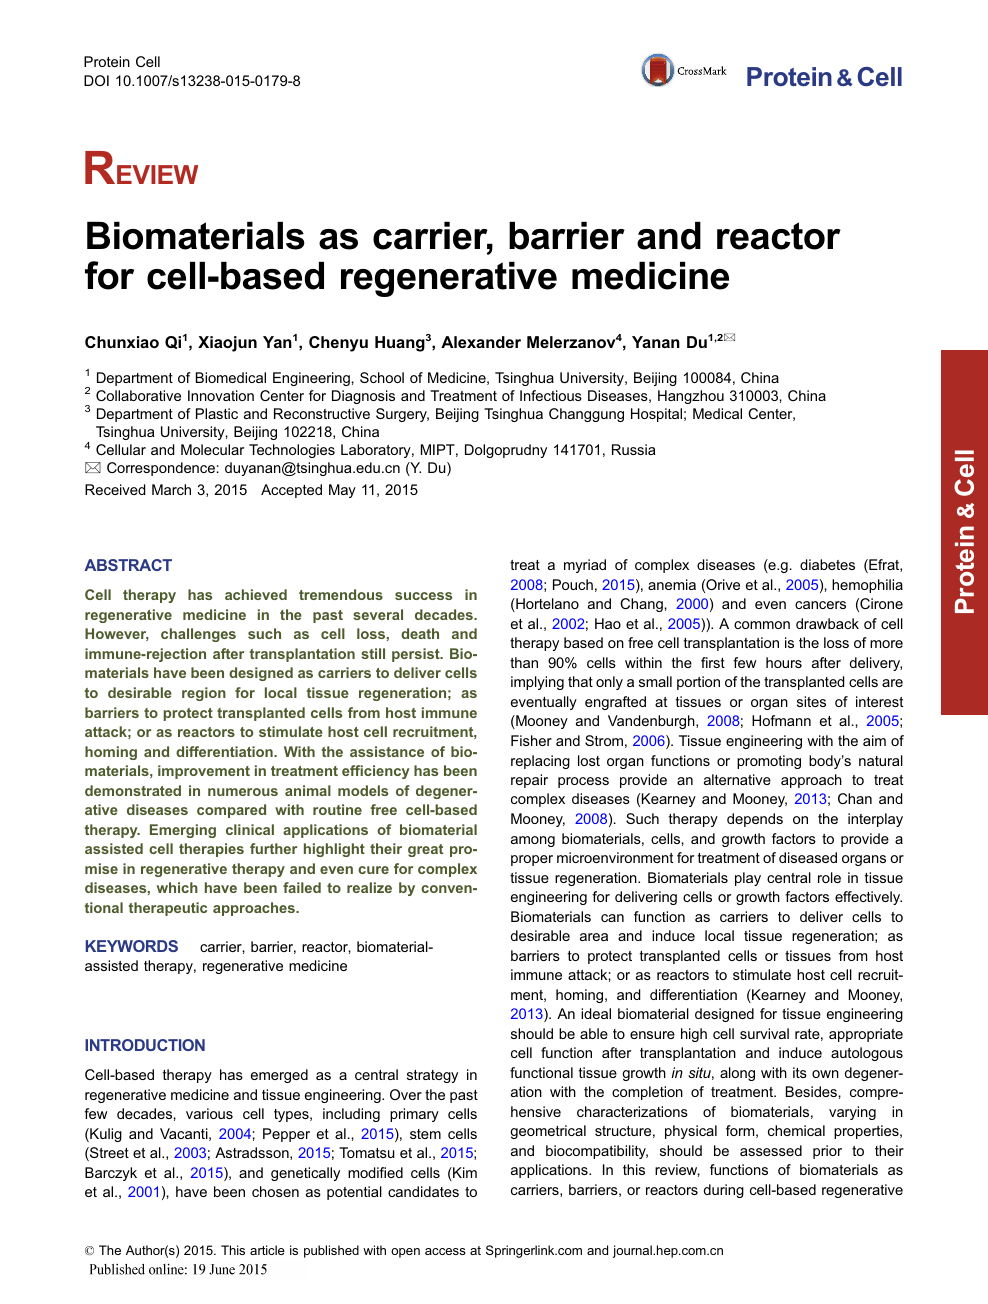 Biomaterials as carrier, barrier and reactor for cell-based